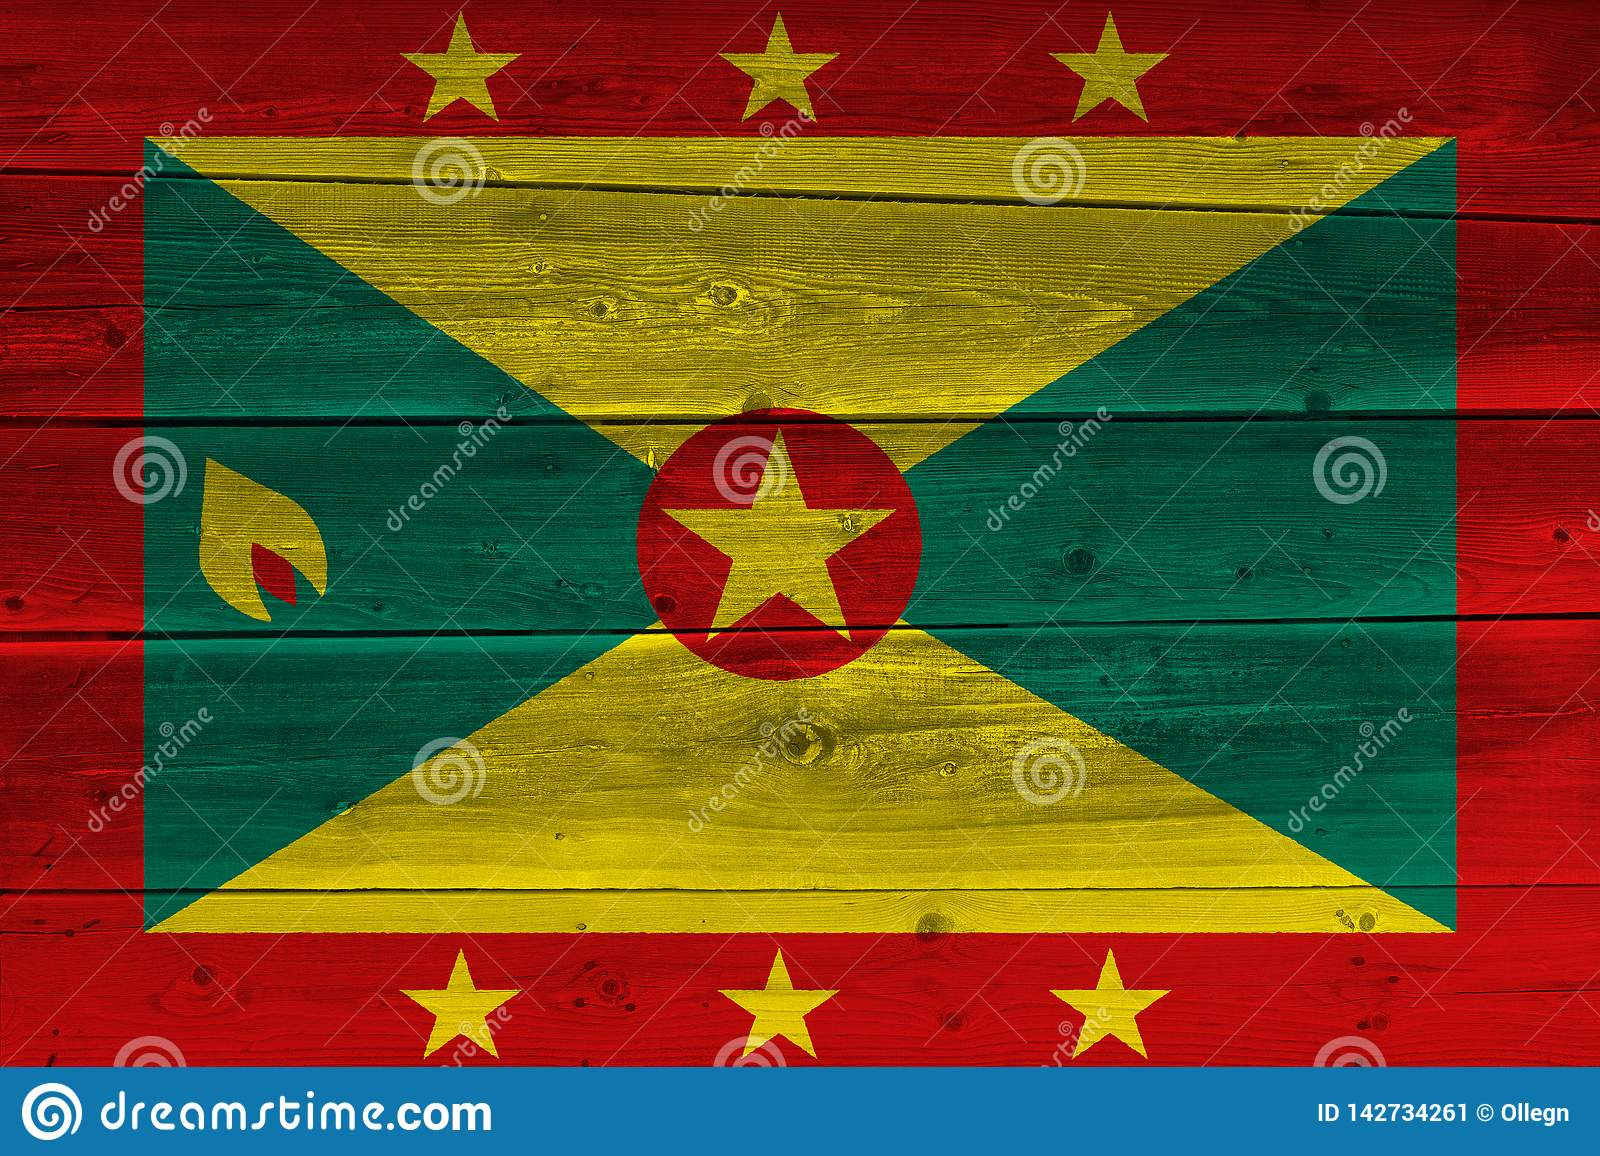 Grenada Flag Painted On Old Wood Plank Stock Image - Image